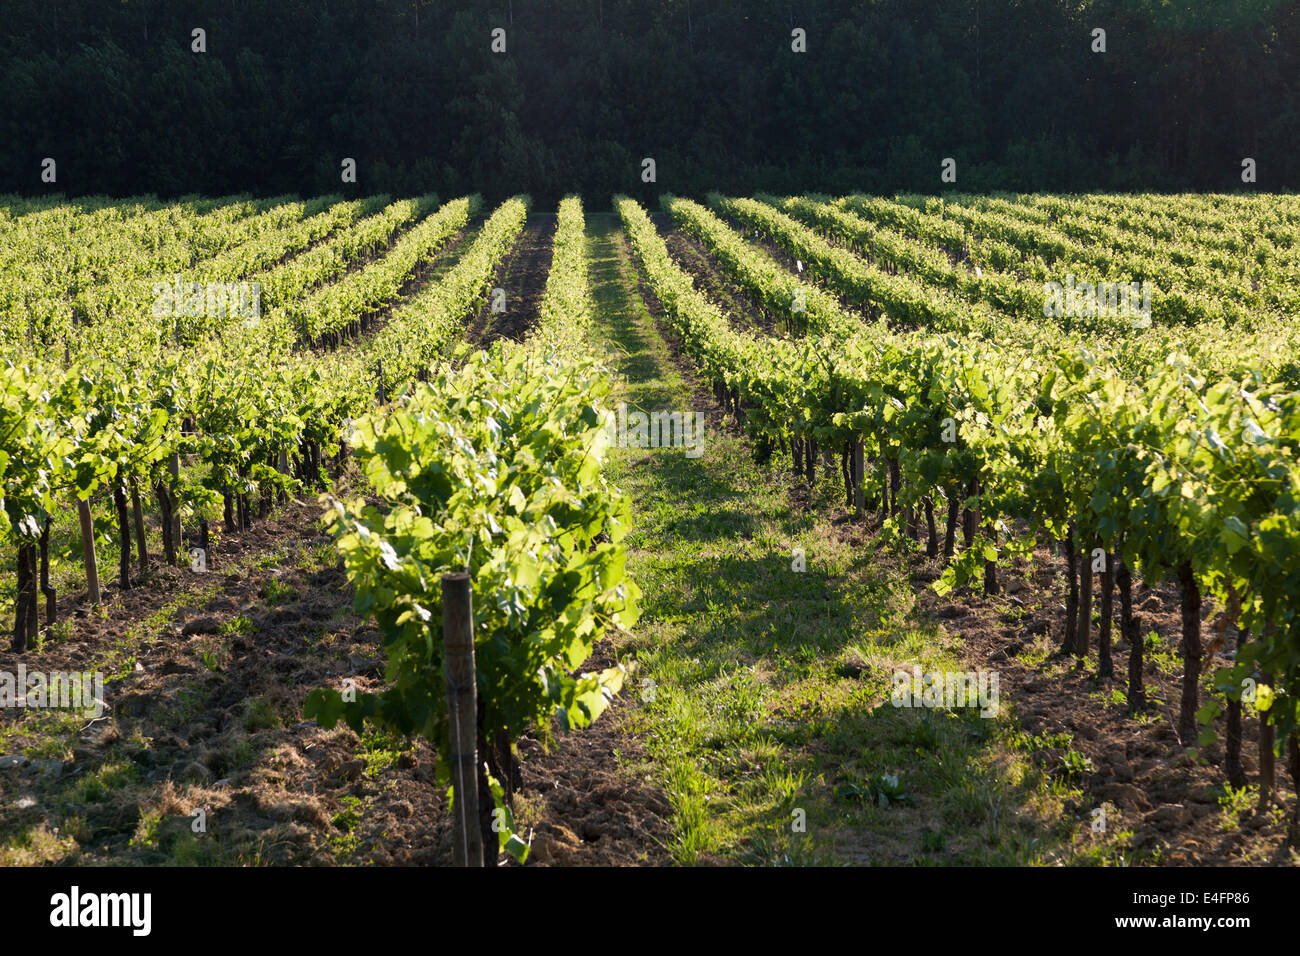 Rows of grape vines perspective. - Stock Image